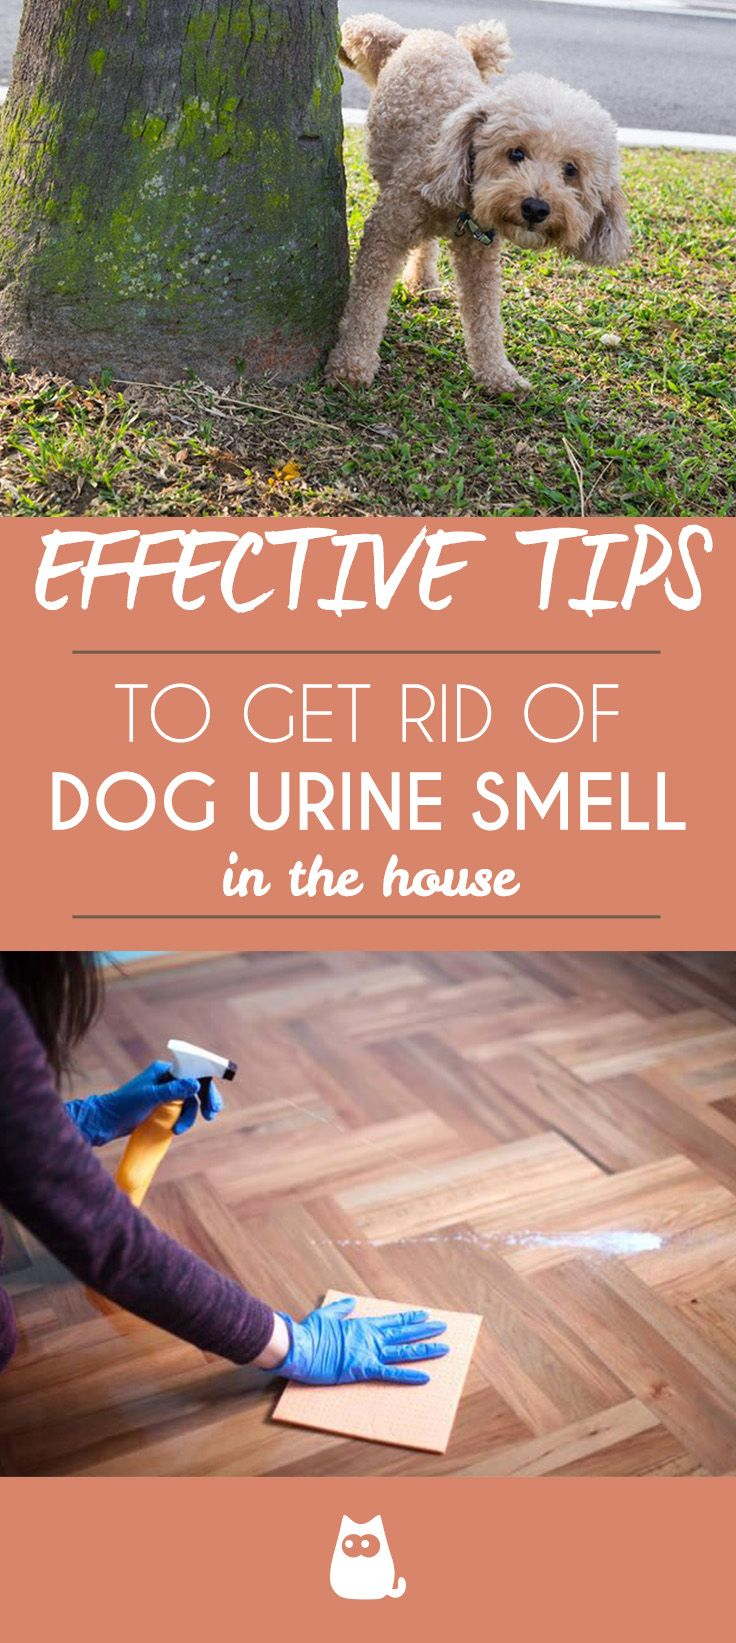 How to Get Rid of Dog Urine Smell | Dogs | Dog urine, Dog